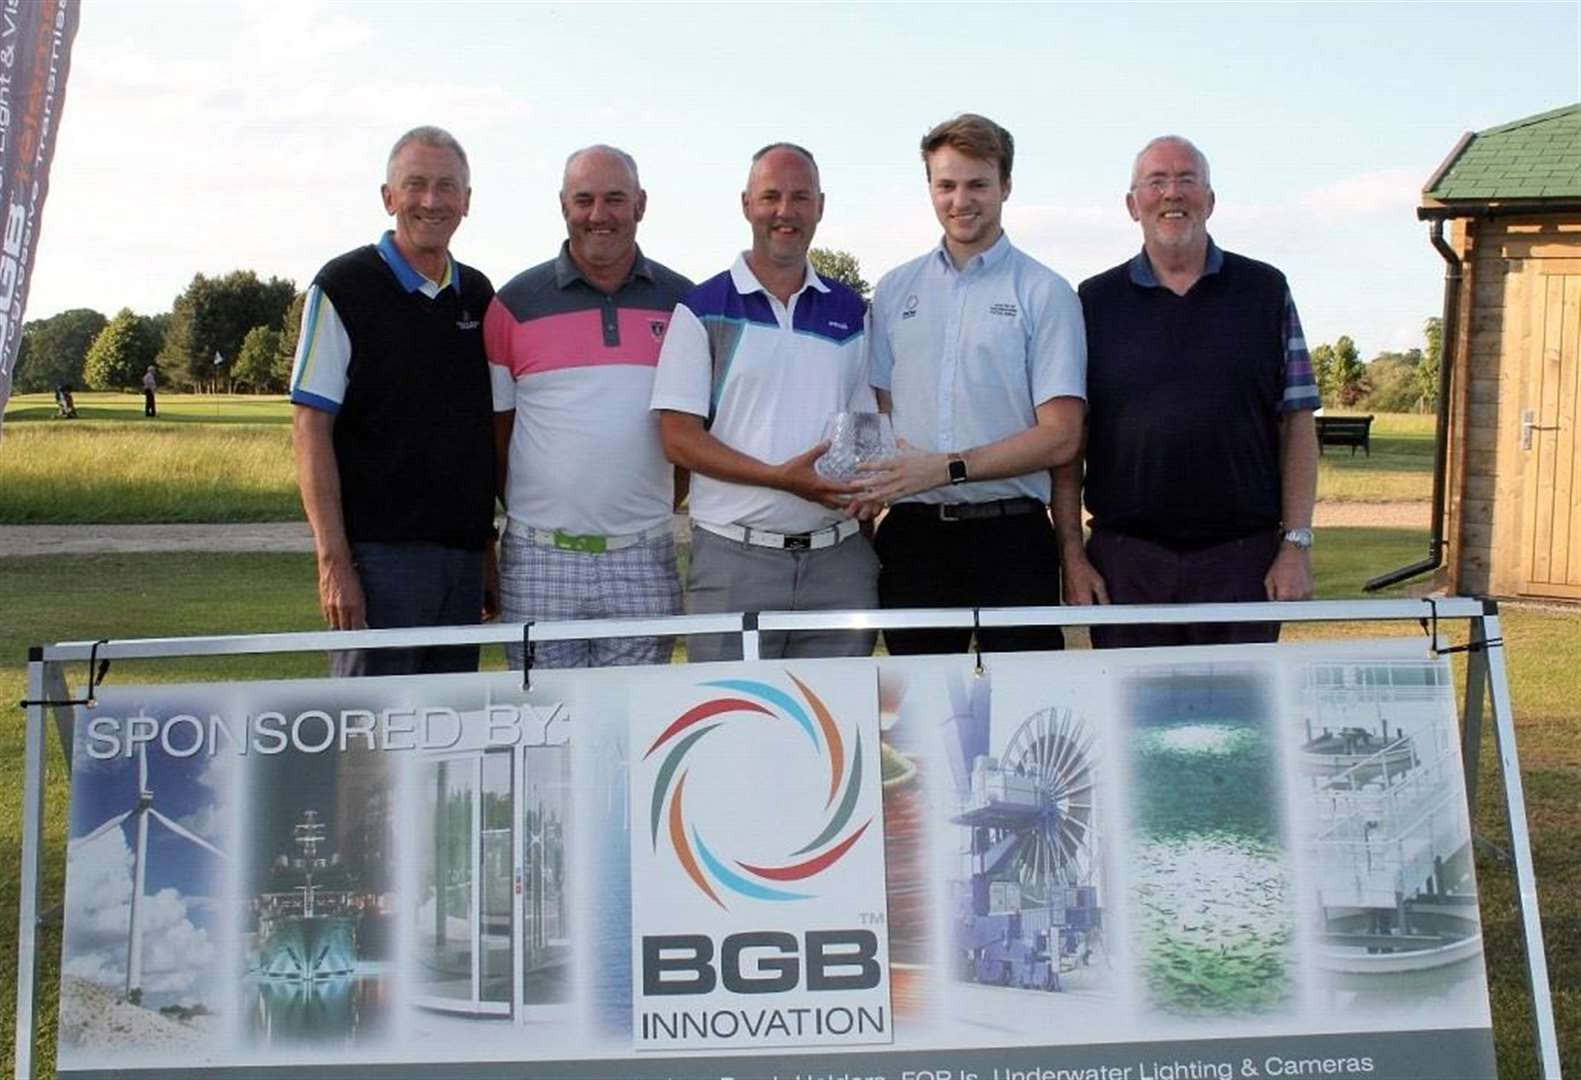 Rotary Club of Grantham Kesteven raise charity money with annual golf day